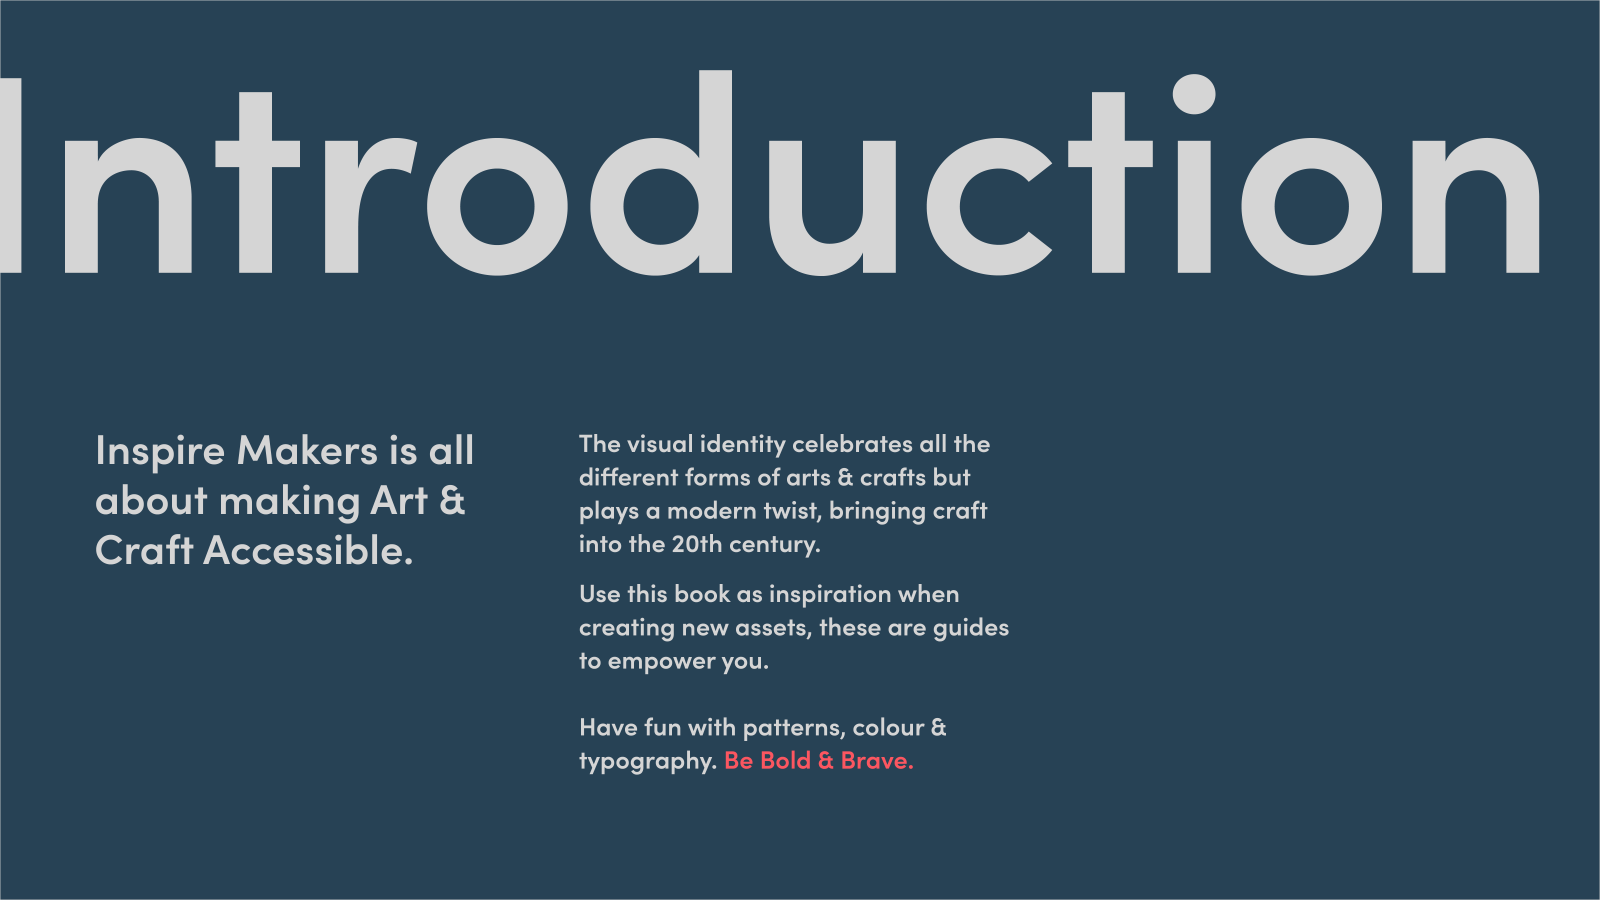 Inspire Makers Brand guidelines - introduction